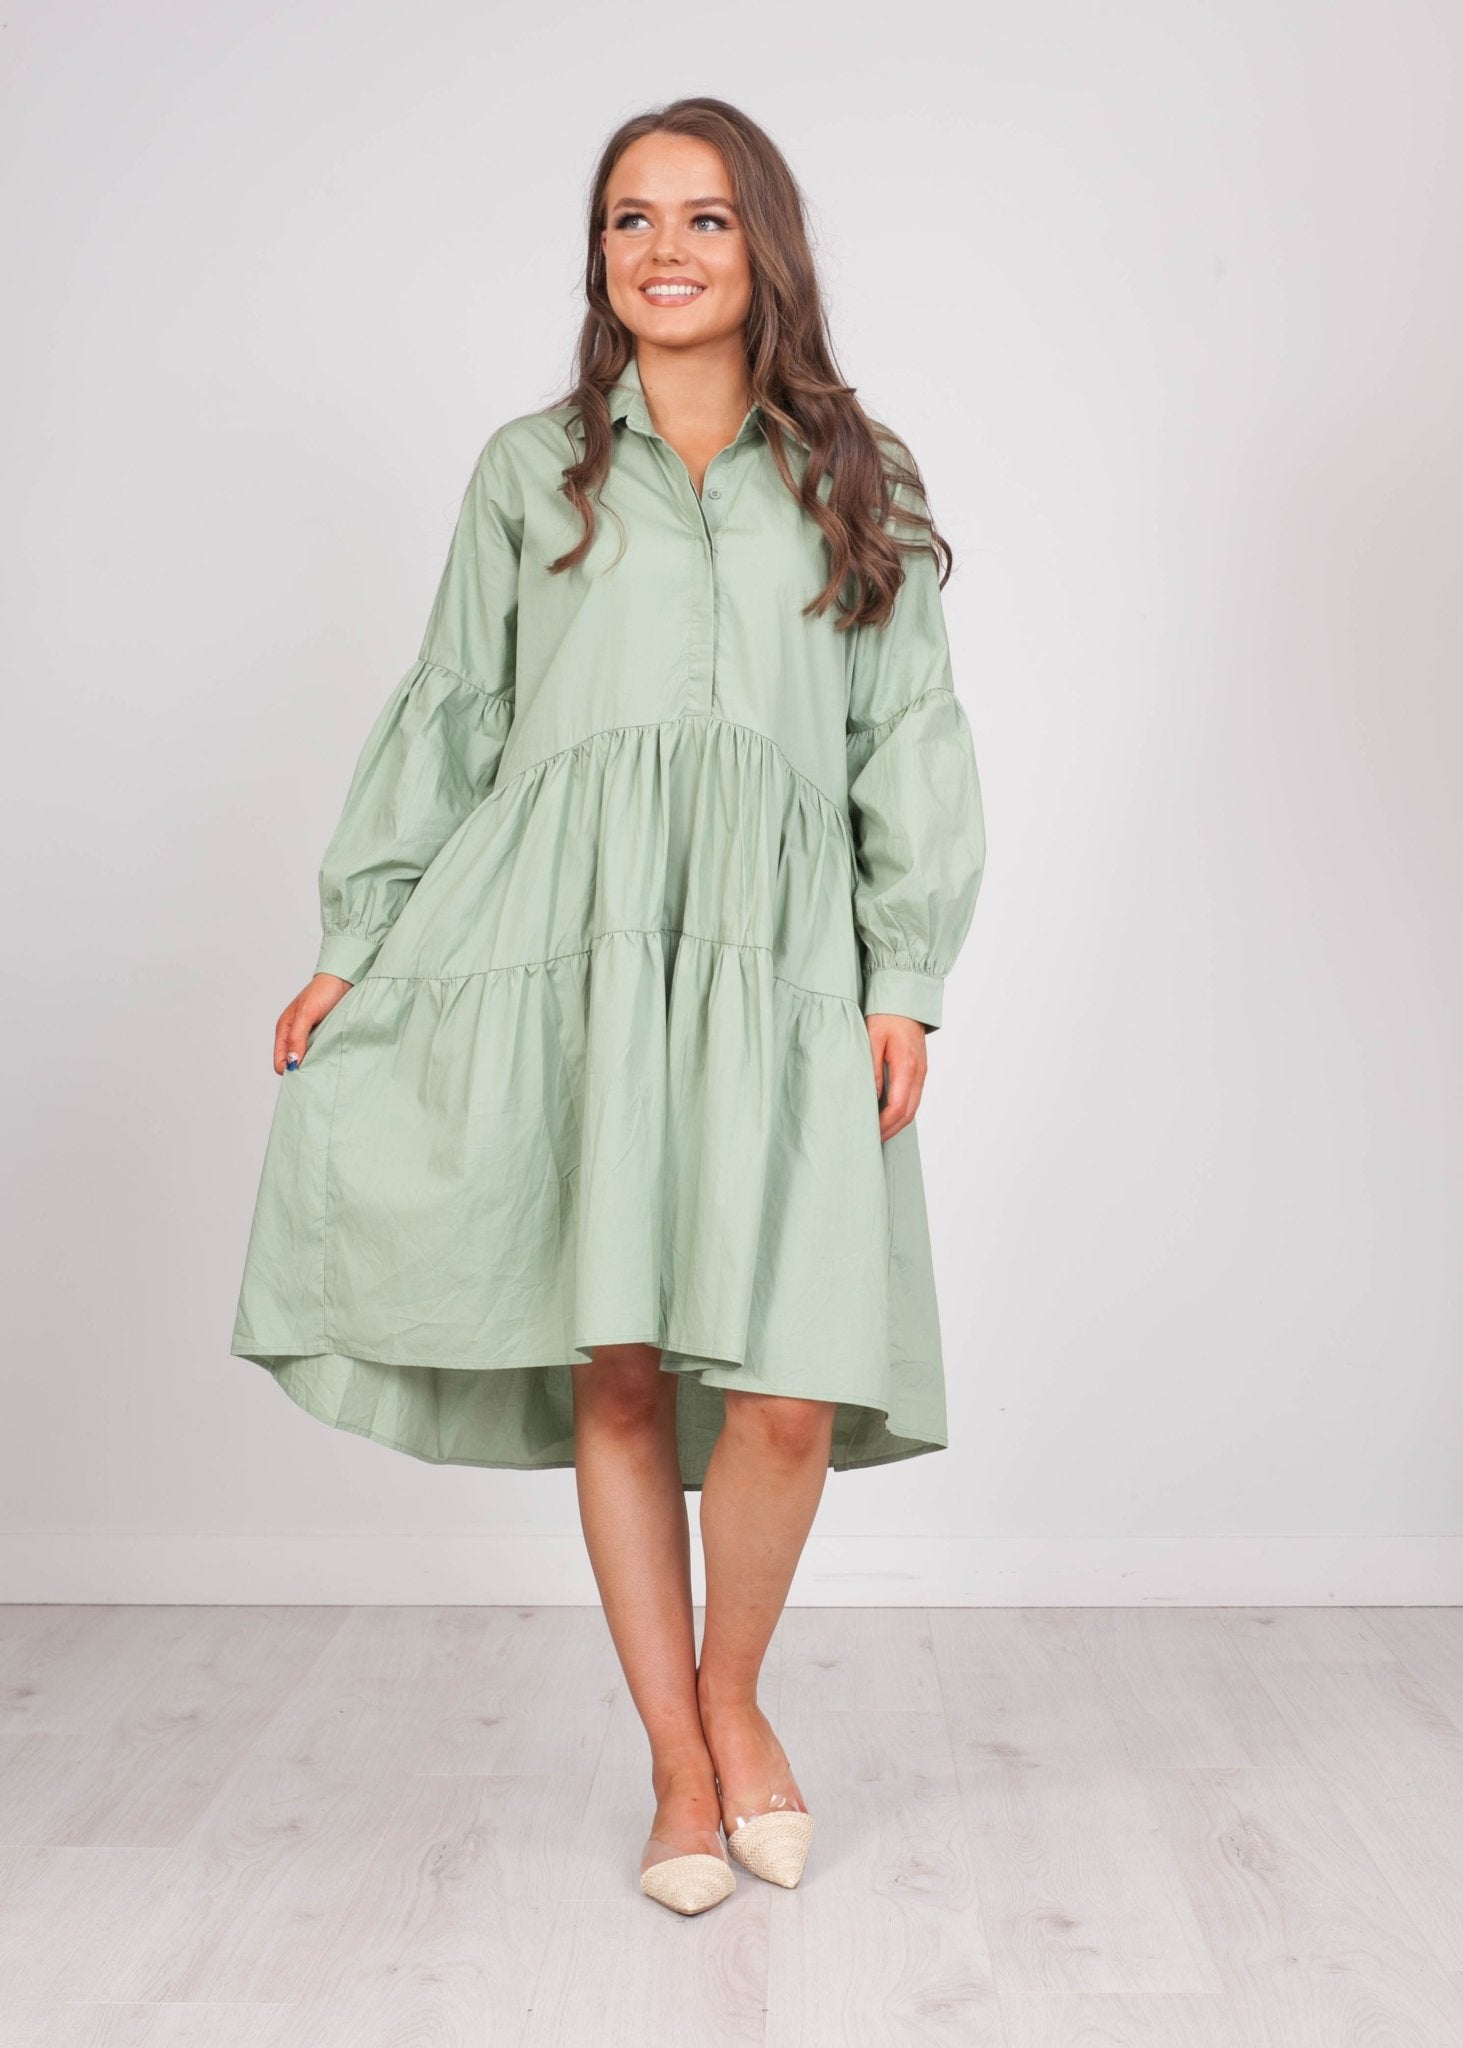 Priya Green A-Line Shirt Dress - The Walk in Wardrobe